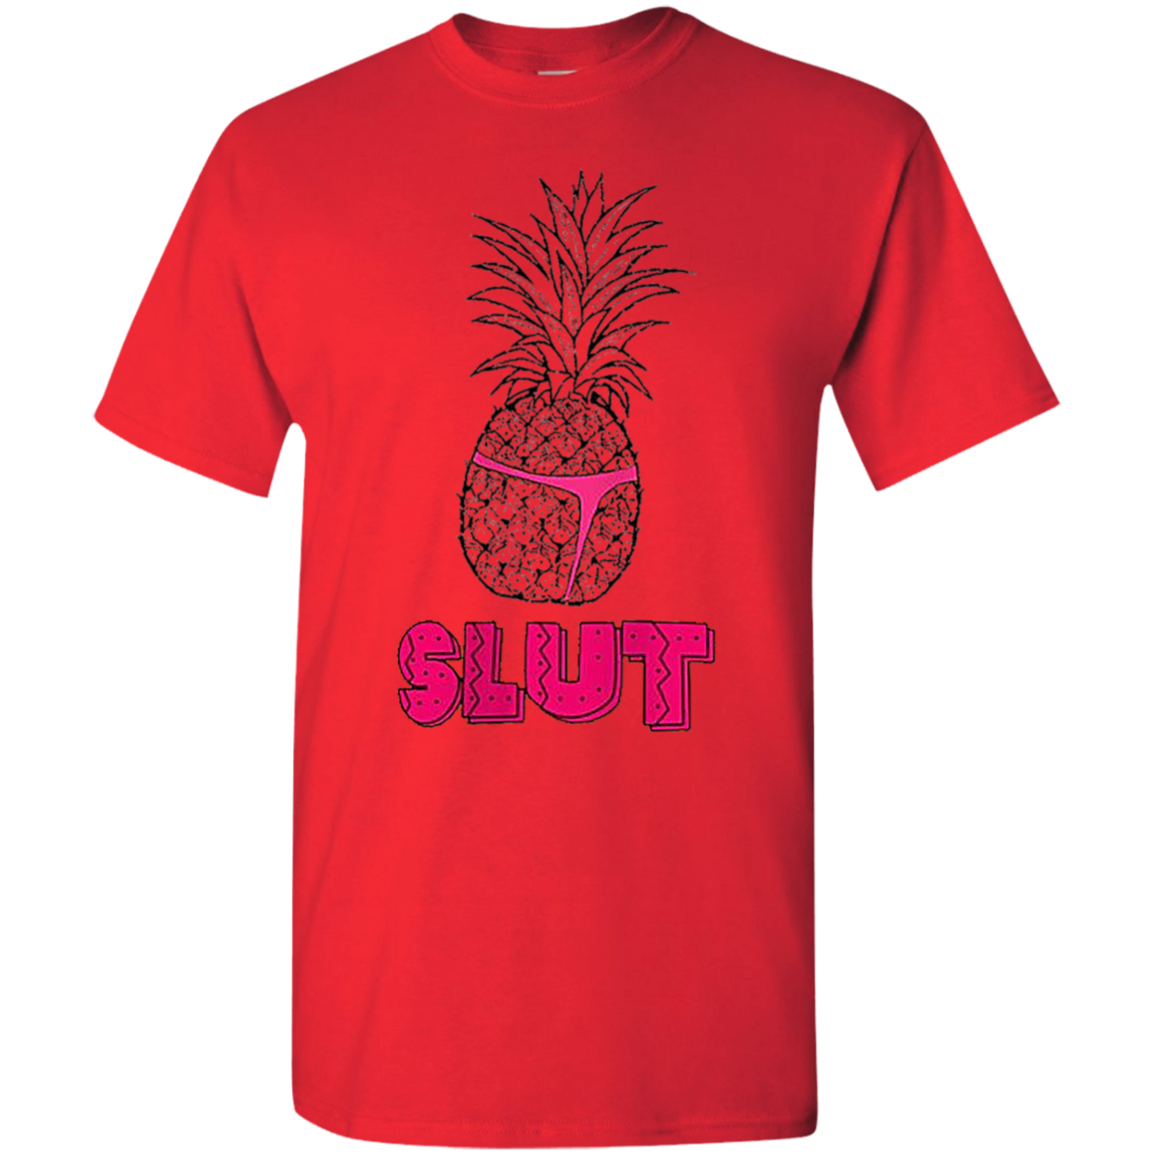 Brooklyn Nine Nine, Pineapple Slut T-Shirt